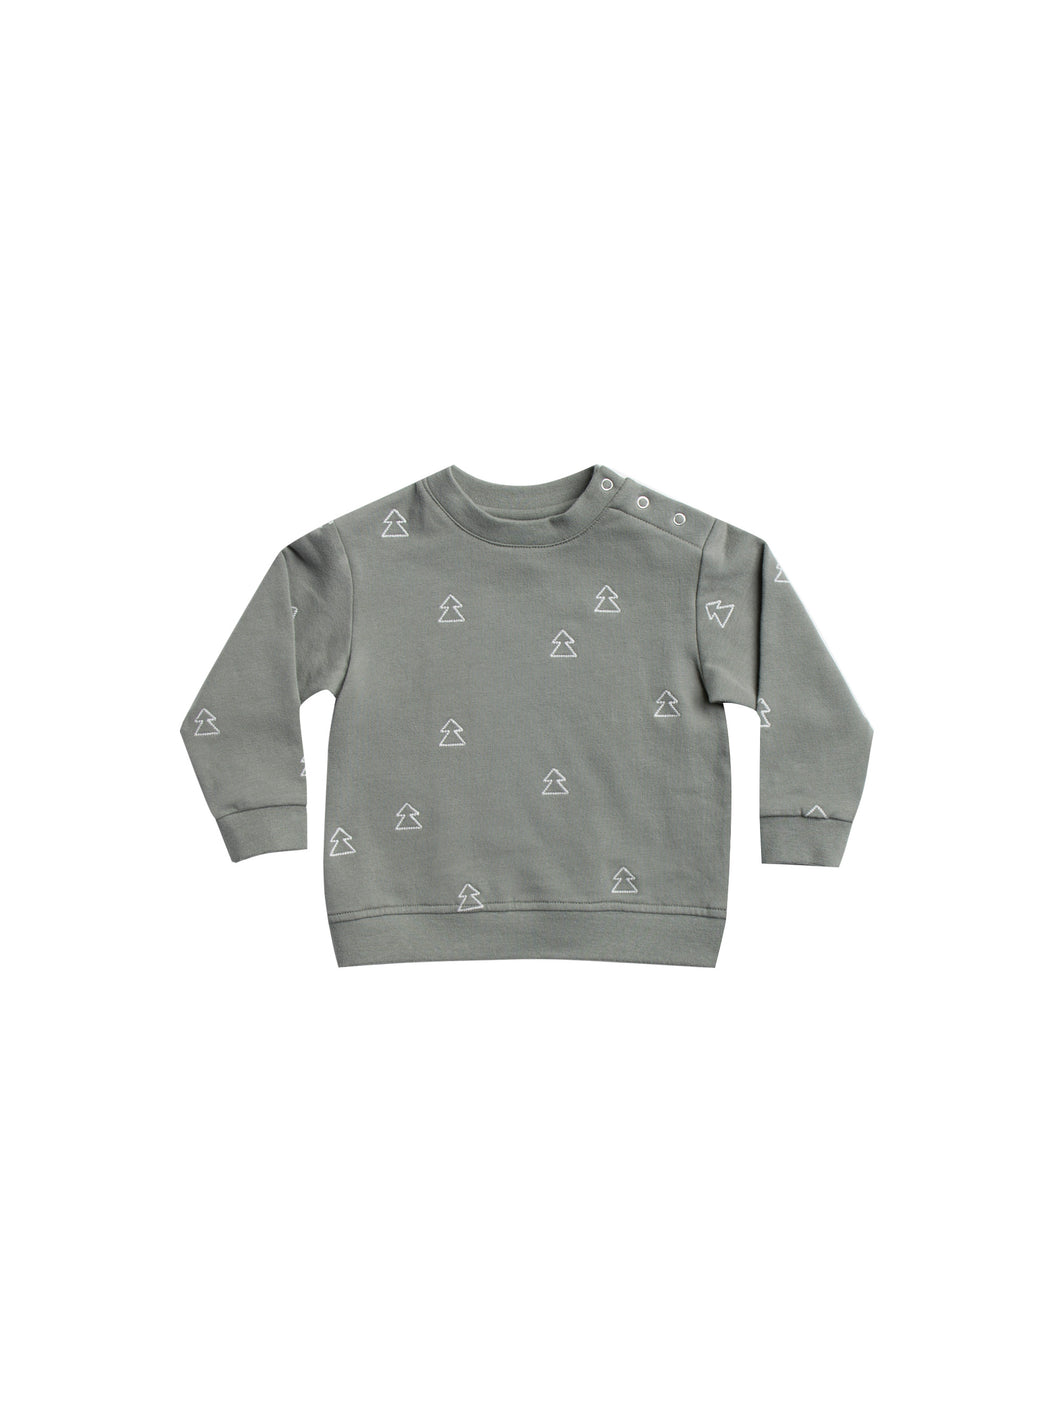 Quincy Mae fleece basic sweatshirt - eucalyptus